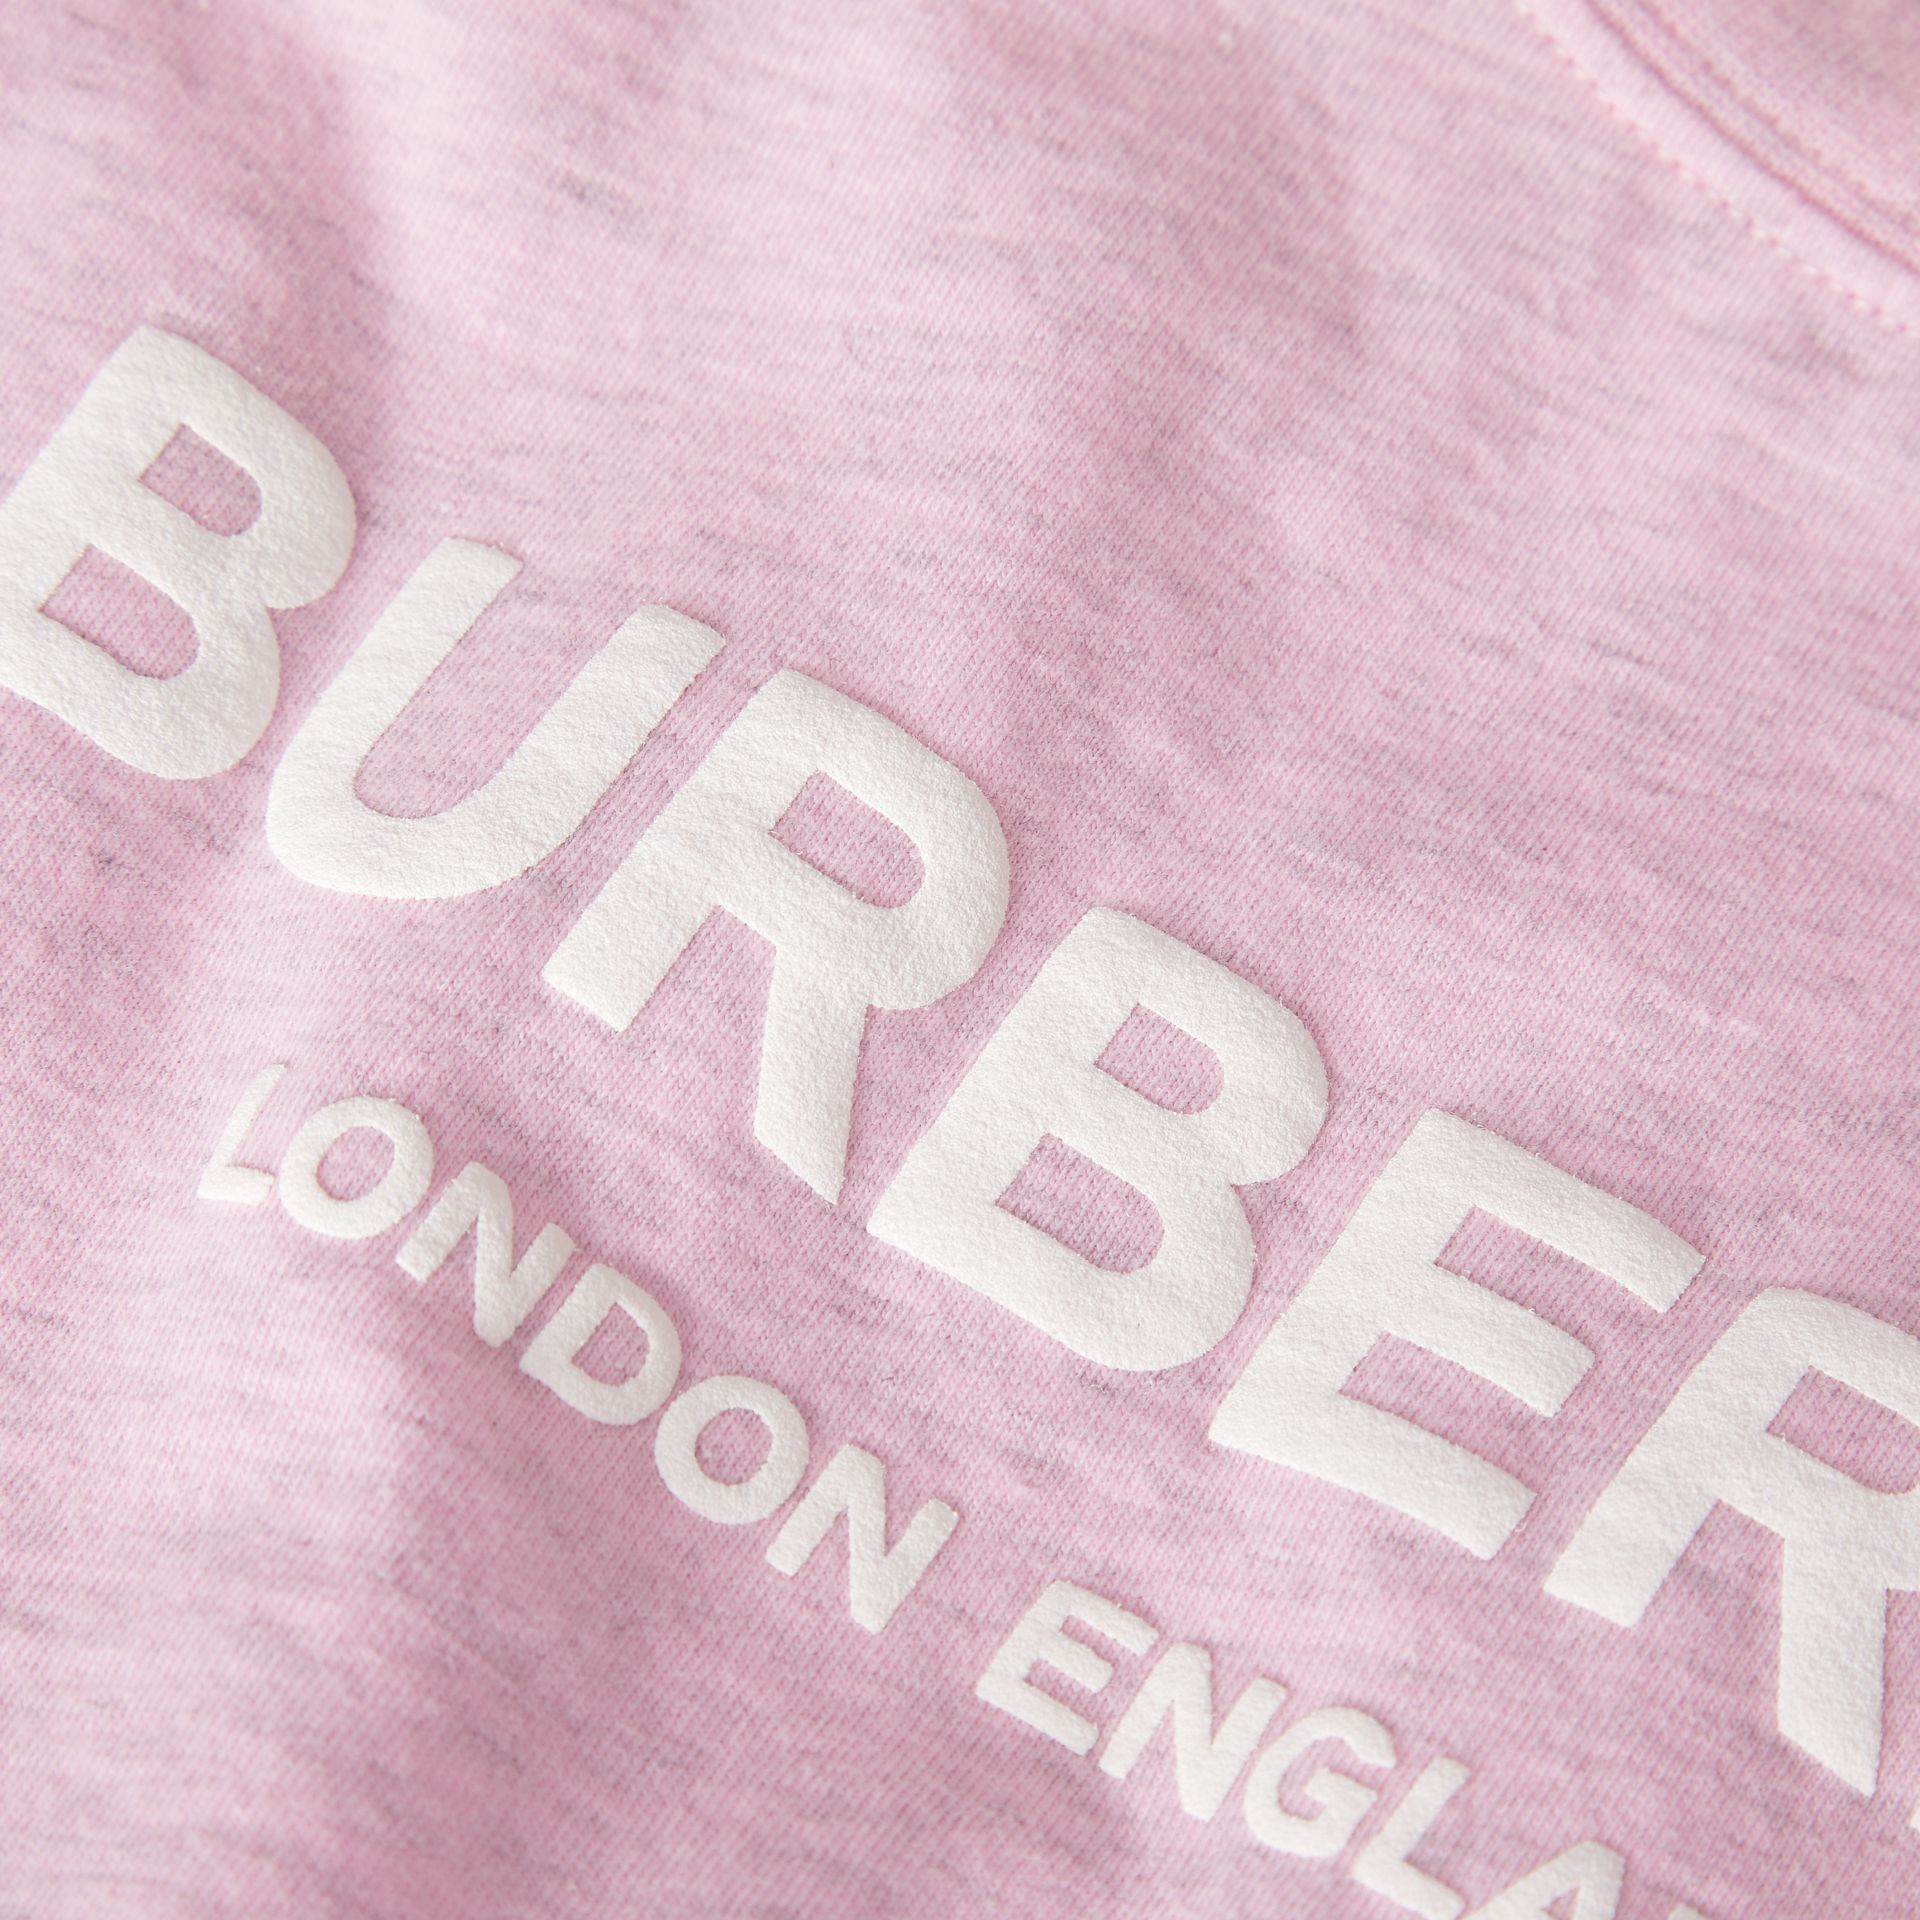 Logo Print Cotton T-shirt in Pale Neon Pink - Children | Burberry Australia - gallery image 1